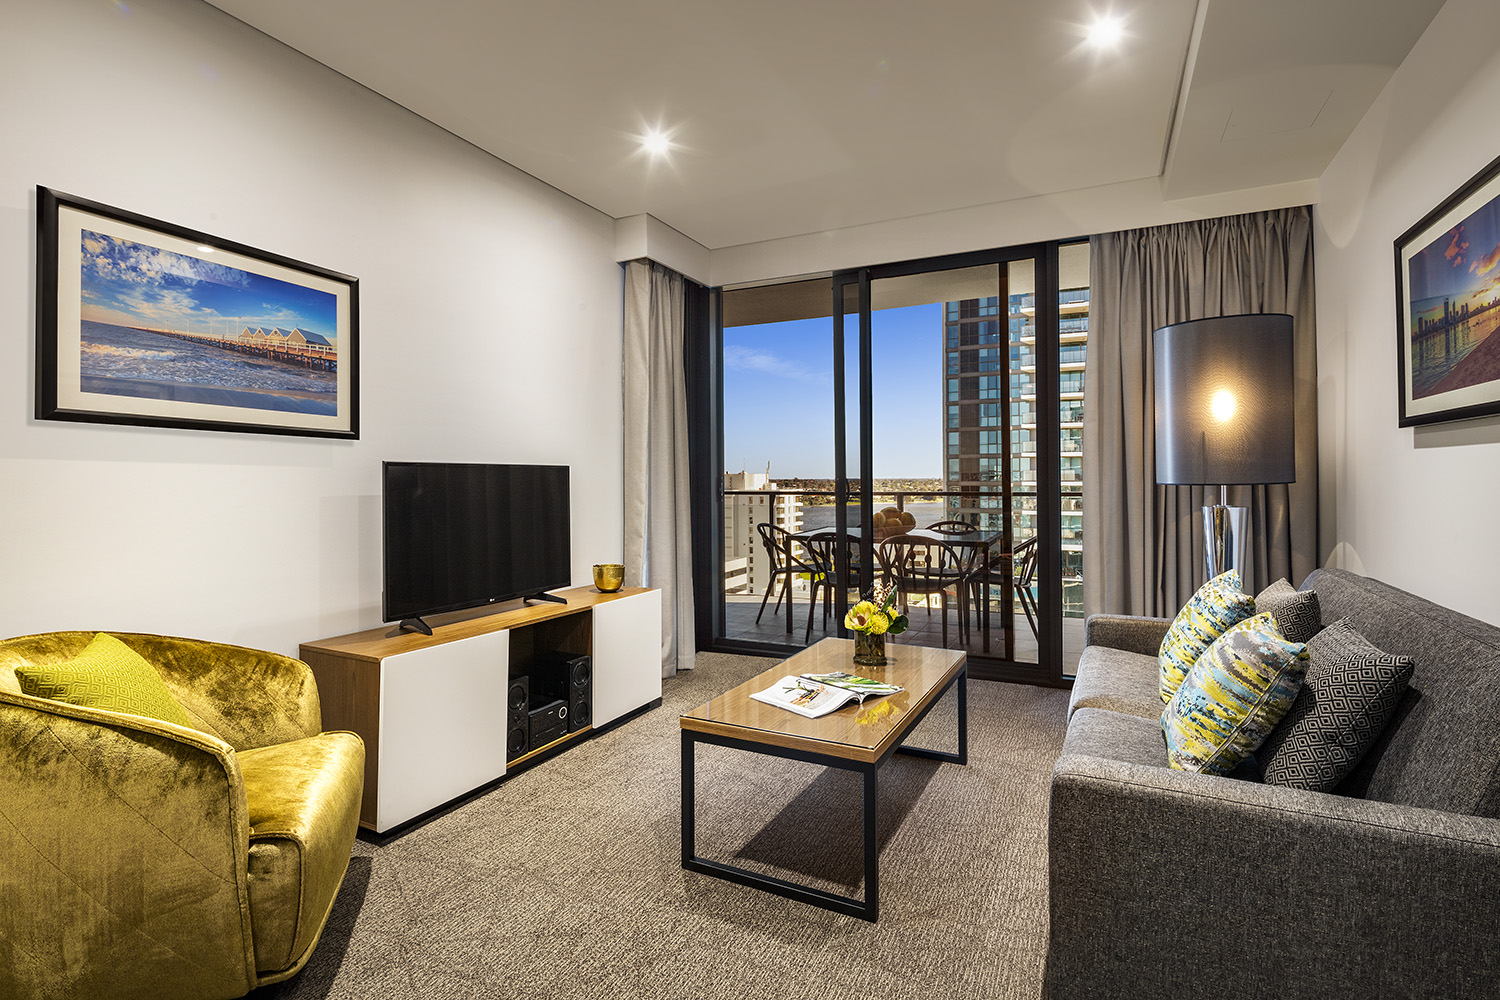 quest east perth gallery east perth hotel quest east. Black Bedroom Furniture Sets. Home Design Ideas